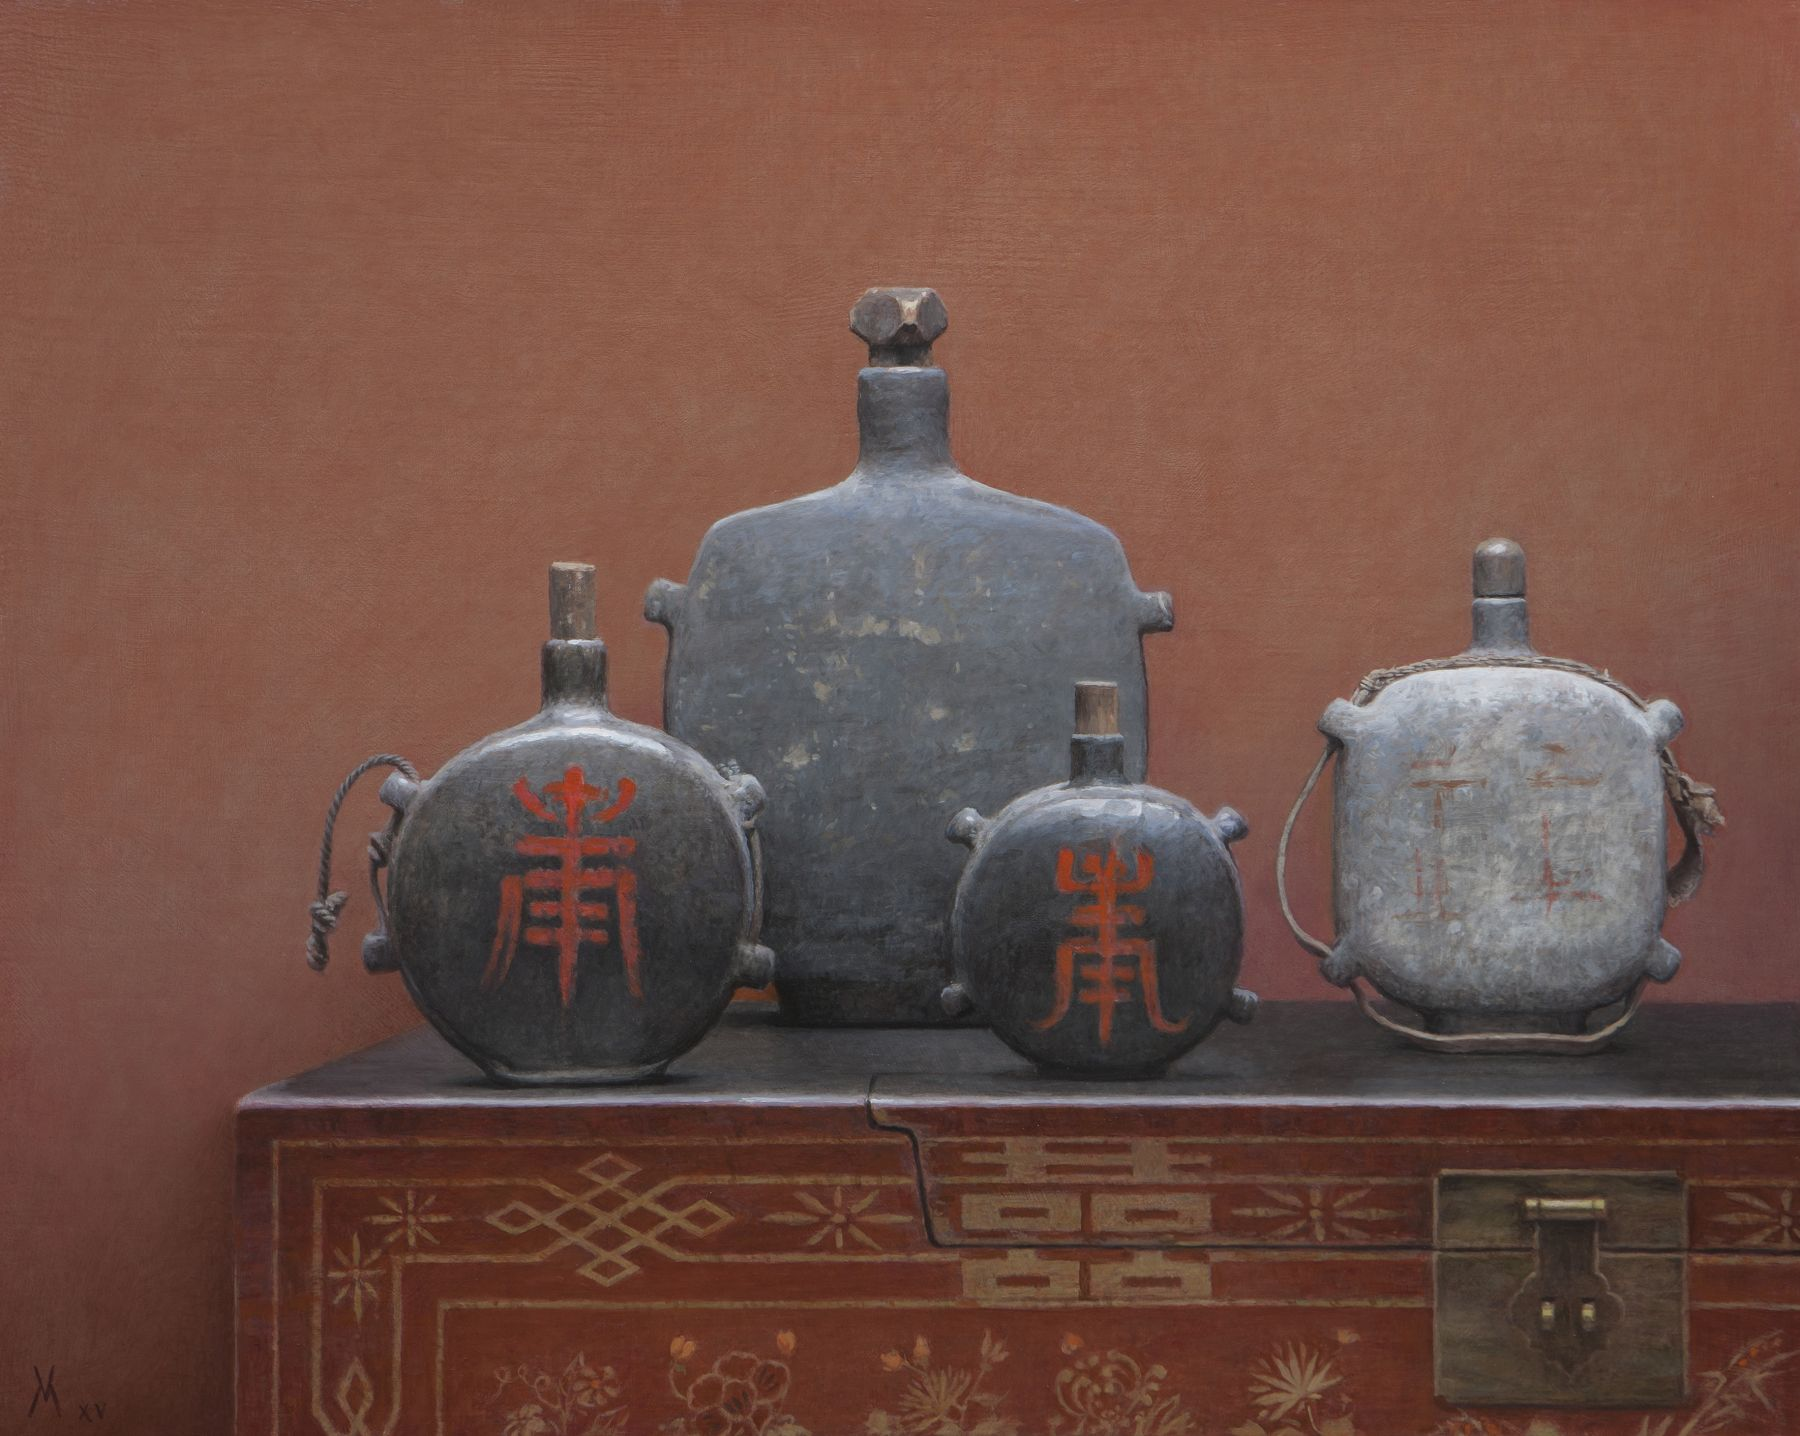 guillermo munoz vera, Chinese Canteens III, 2015, oil on canvas mounted on panel, 31 1/2 x 39 3/8 inches